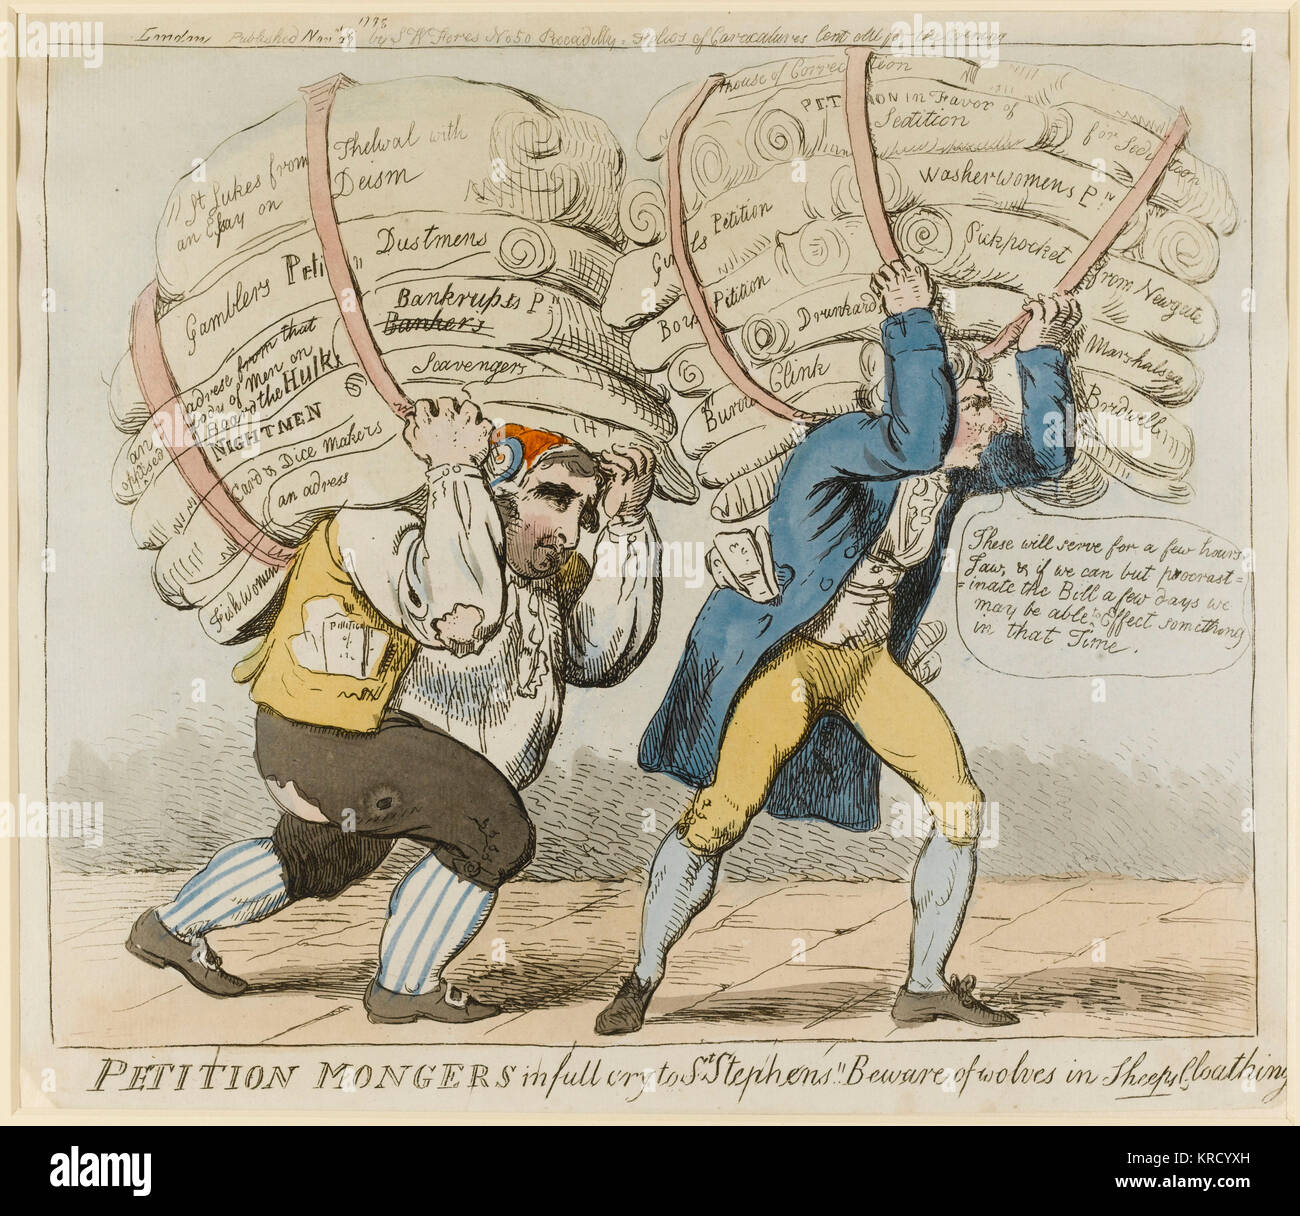 Satirical cartoon, Petition Mongers in full cry to St Stephens!! Beware of wolves in sheeps cloathing.  Sheridan - Stock Image